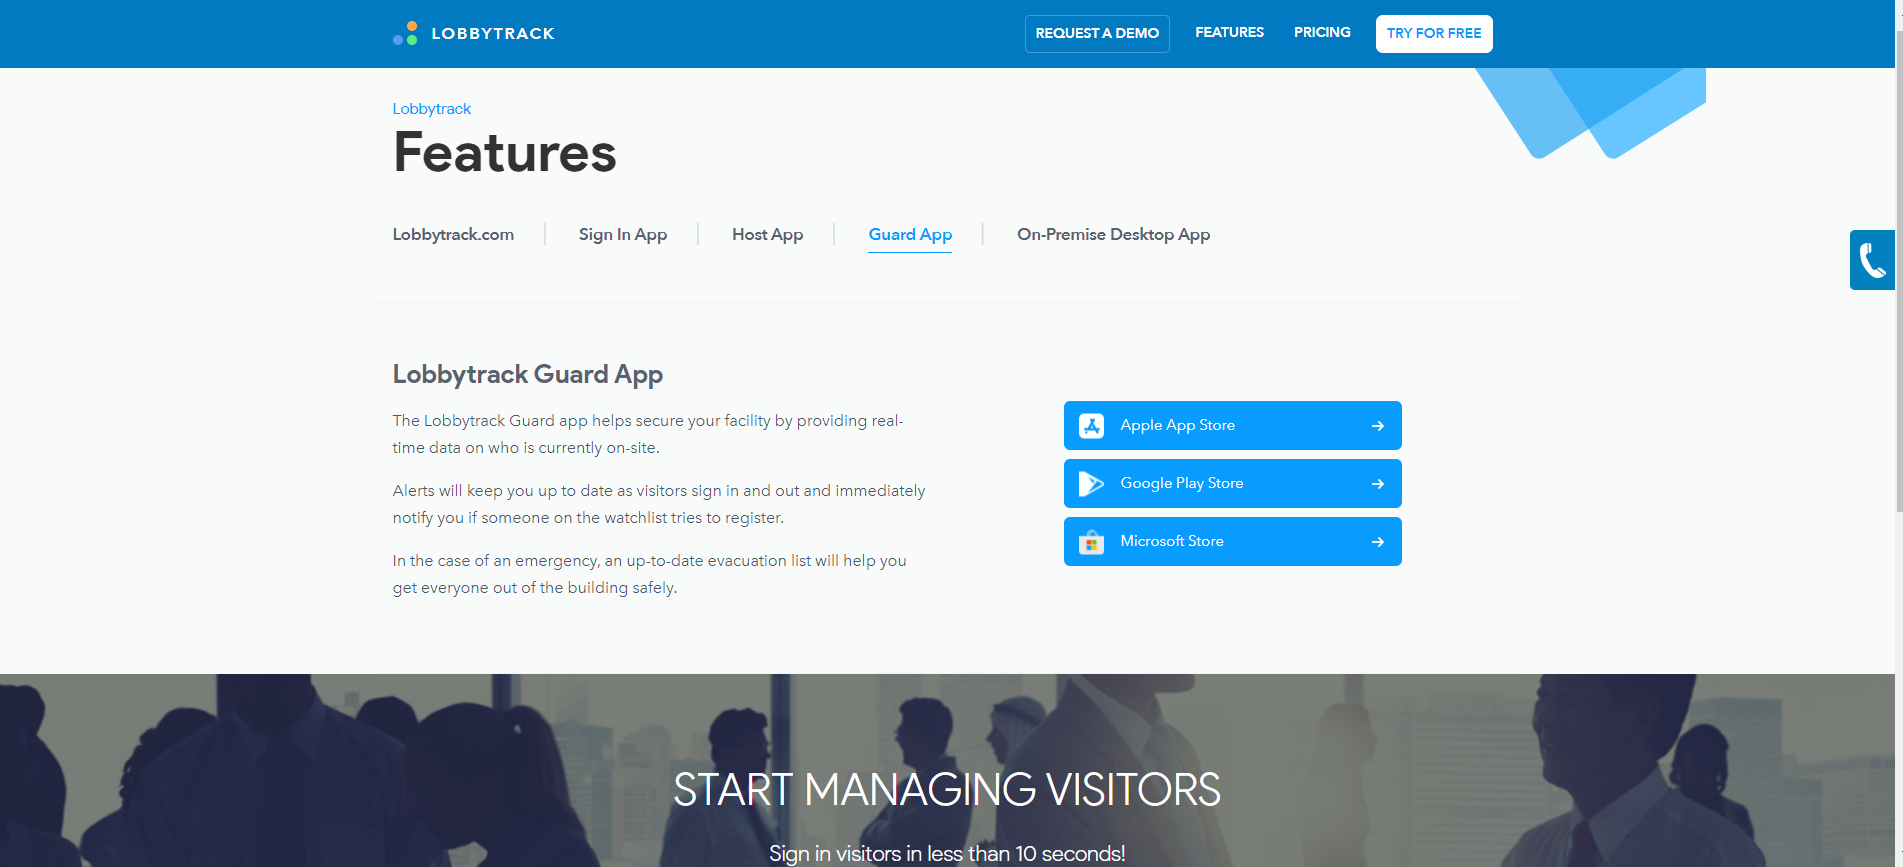 Lobbytrack-Lobbytrack_Guard_App_Visitor_Management_Alert_Security_And_Manage_Evacuation